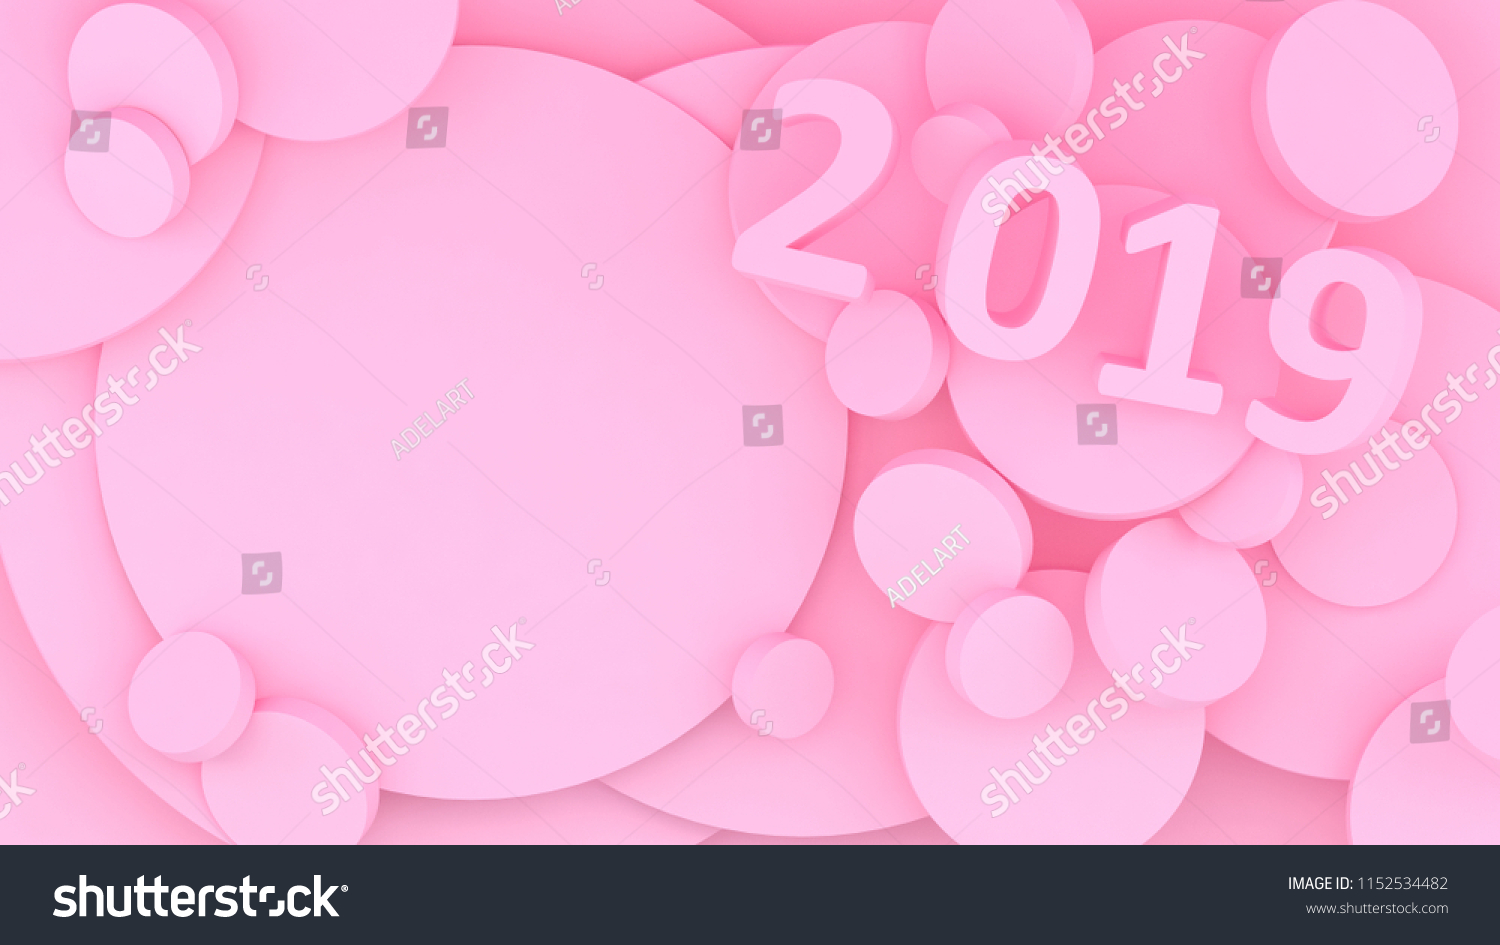 New Year Wallpaper D Background Abstract Shapes D Year Of Earth Pig Winter Holiday Happy New Year Minimalism  Pig Year Pink Pig Color